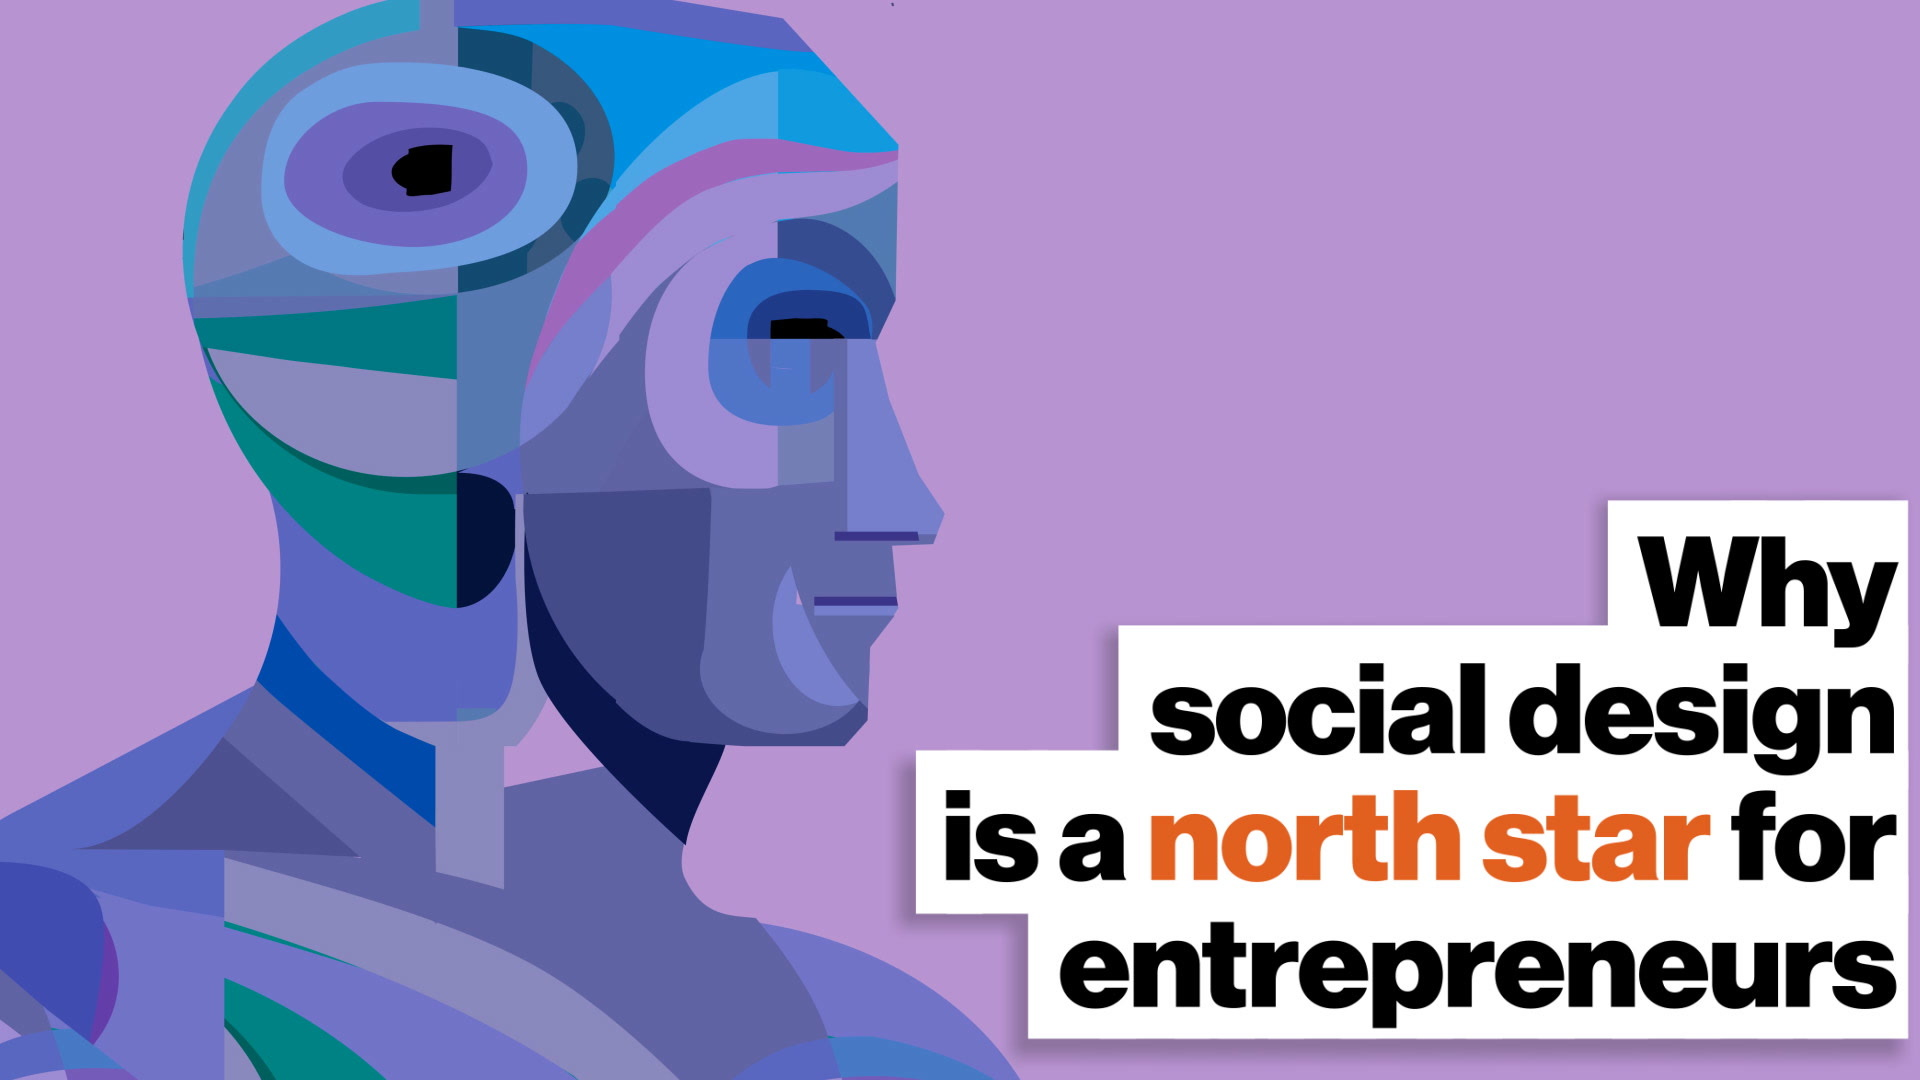 Why social design is a north star for entrepreneurs